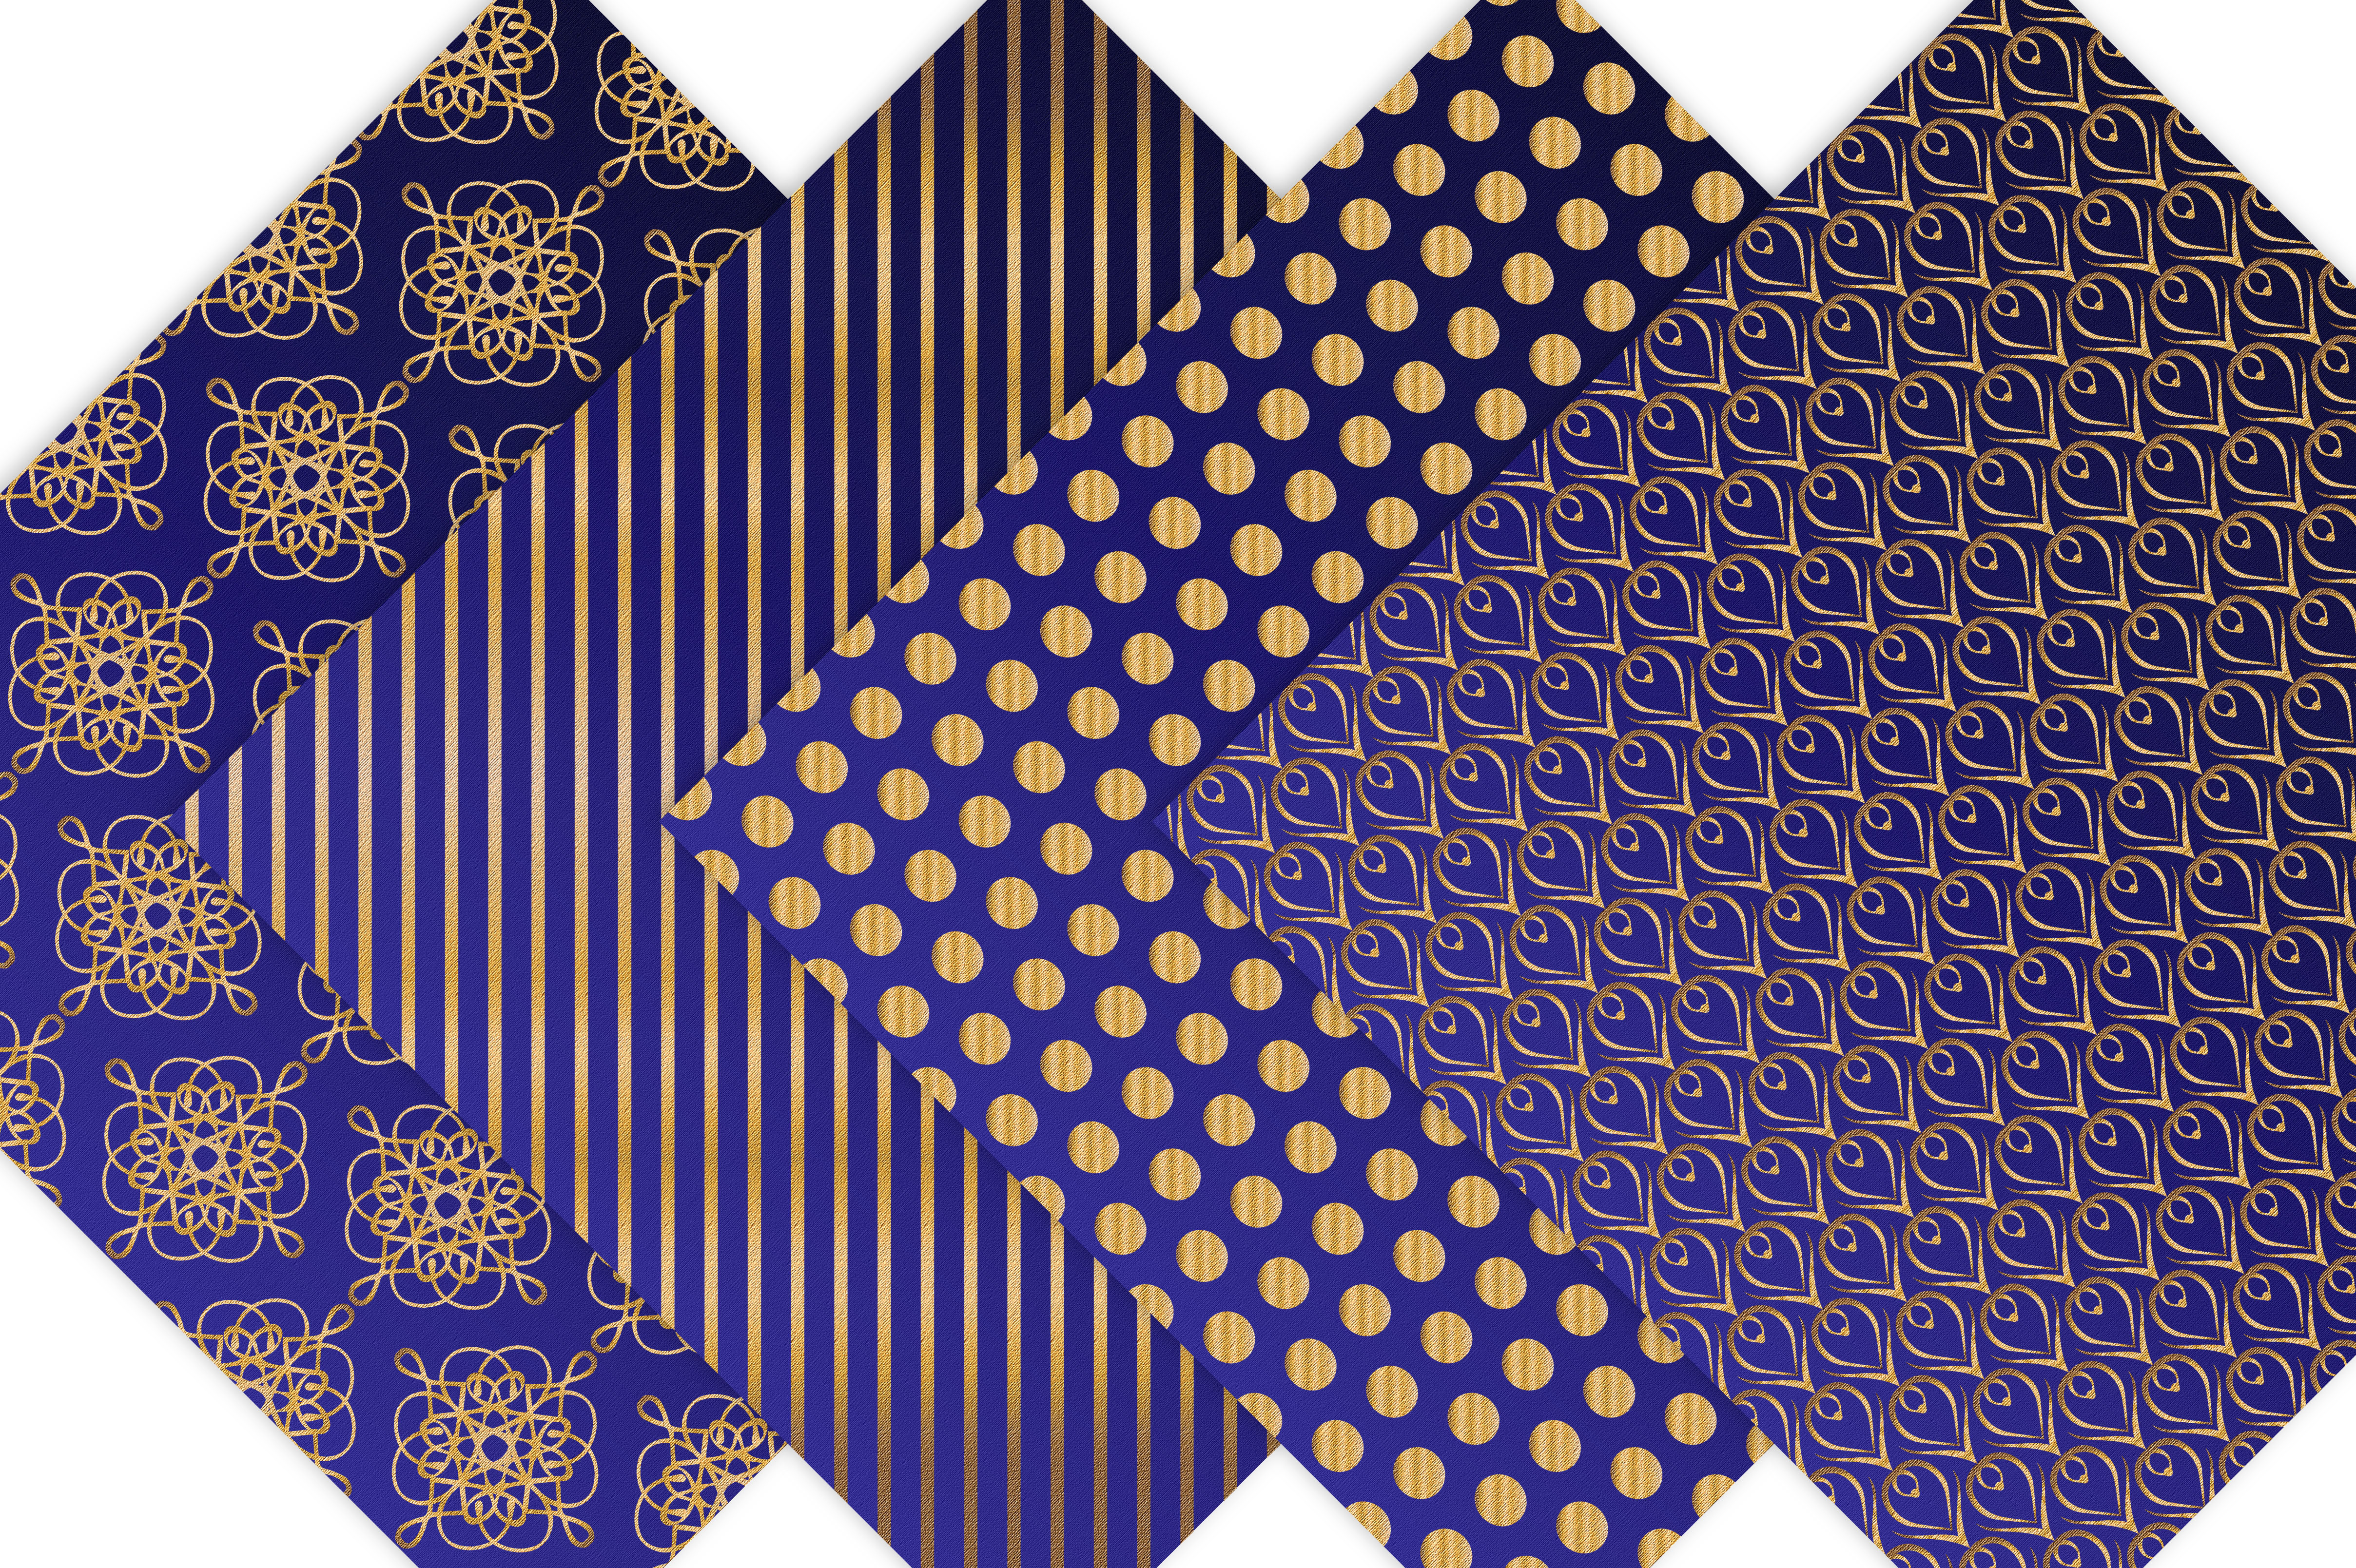 Royal Blue and Gold Digital Backgrounds example image 3